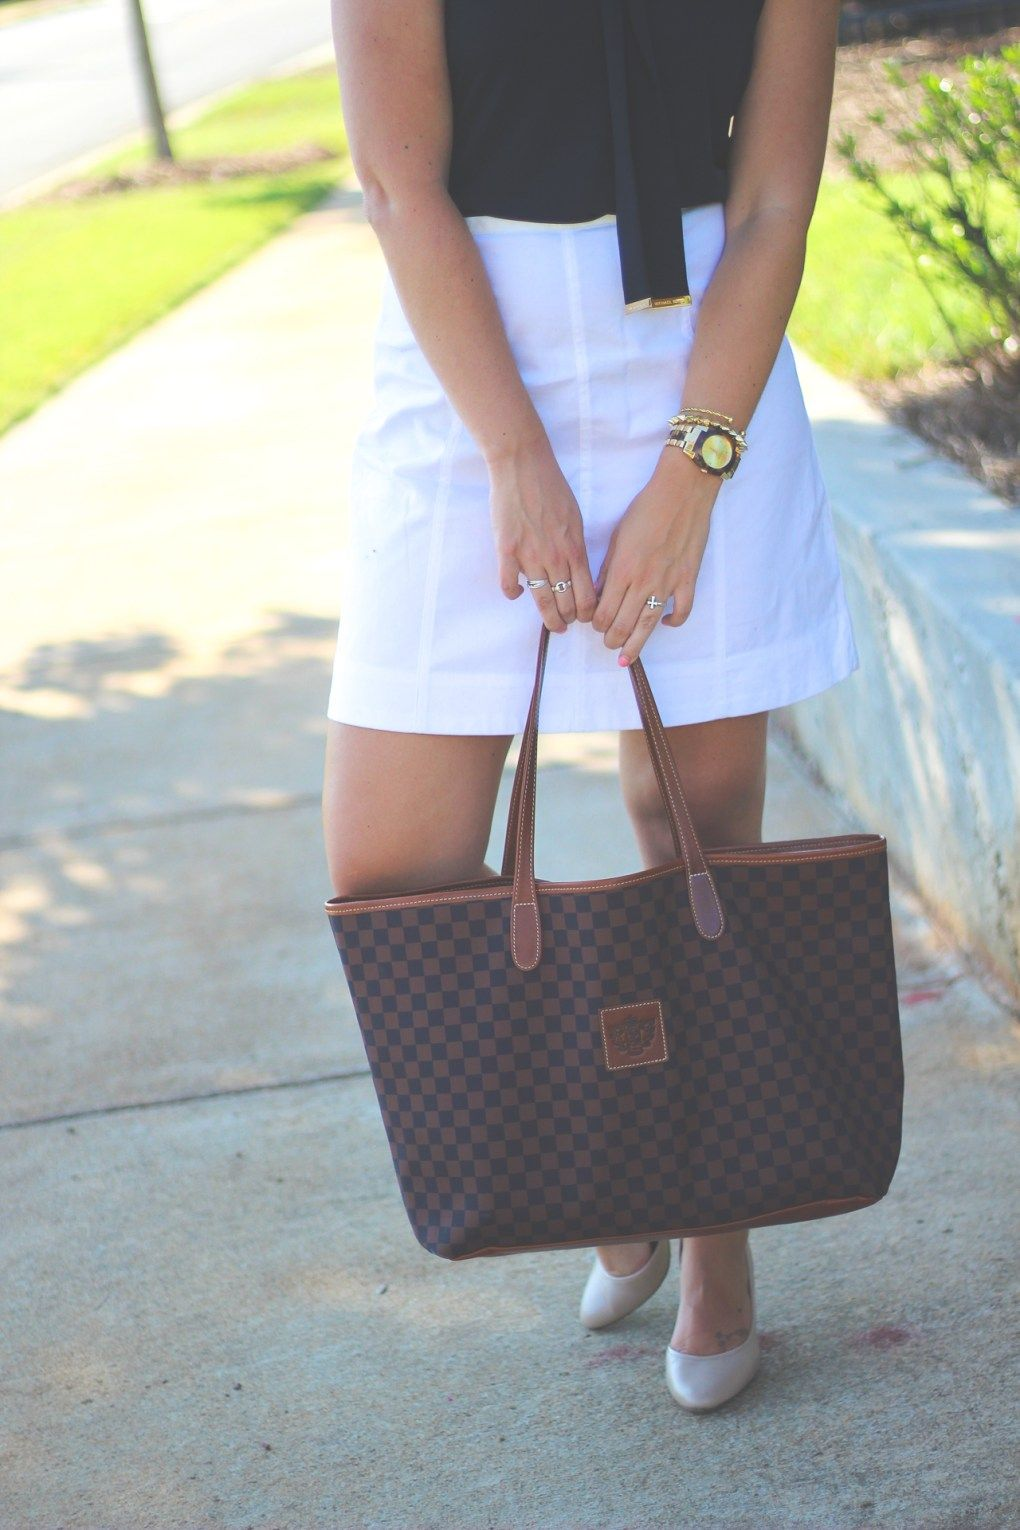 ... Work Wednesday (XXIII) - How 2 Wear It - summer work outfit - navy and white classic outfit